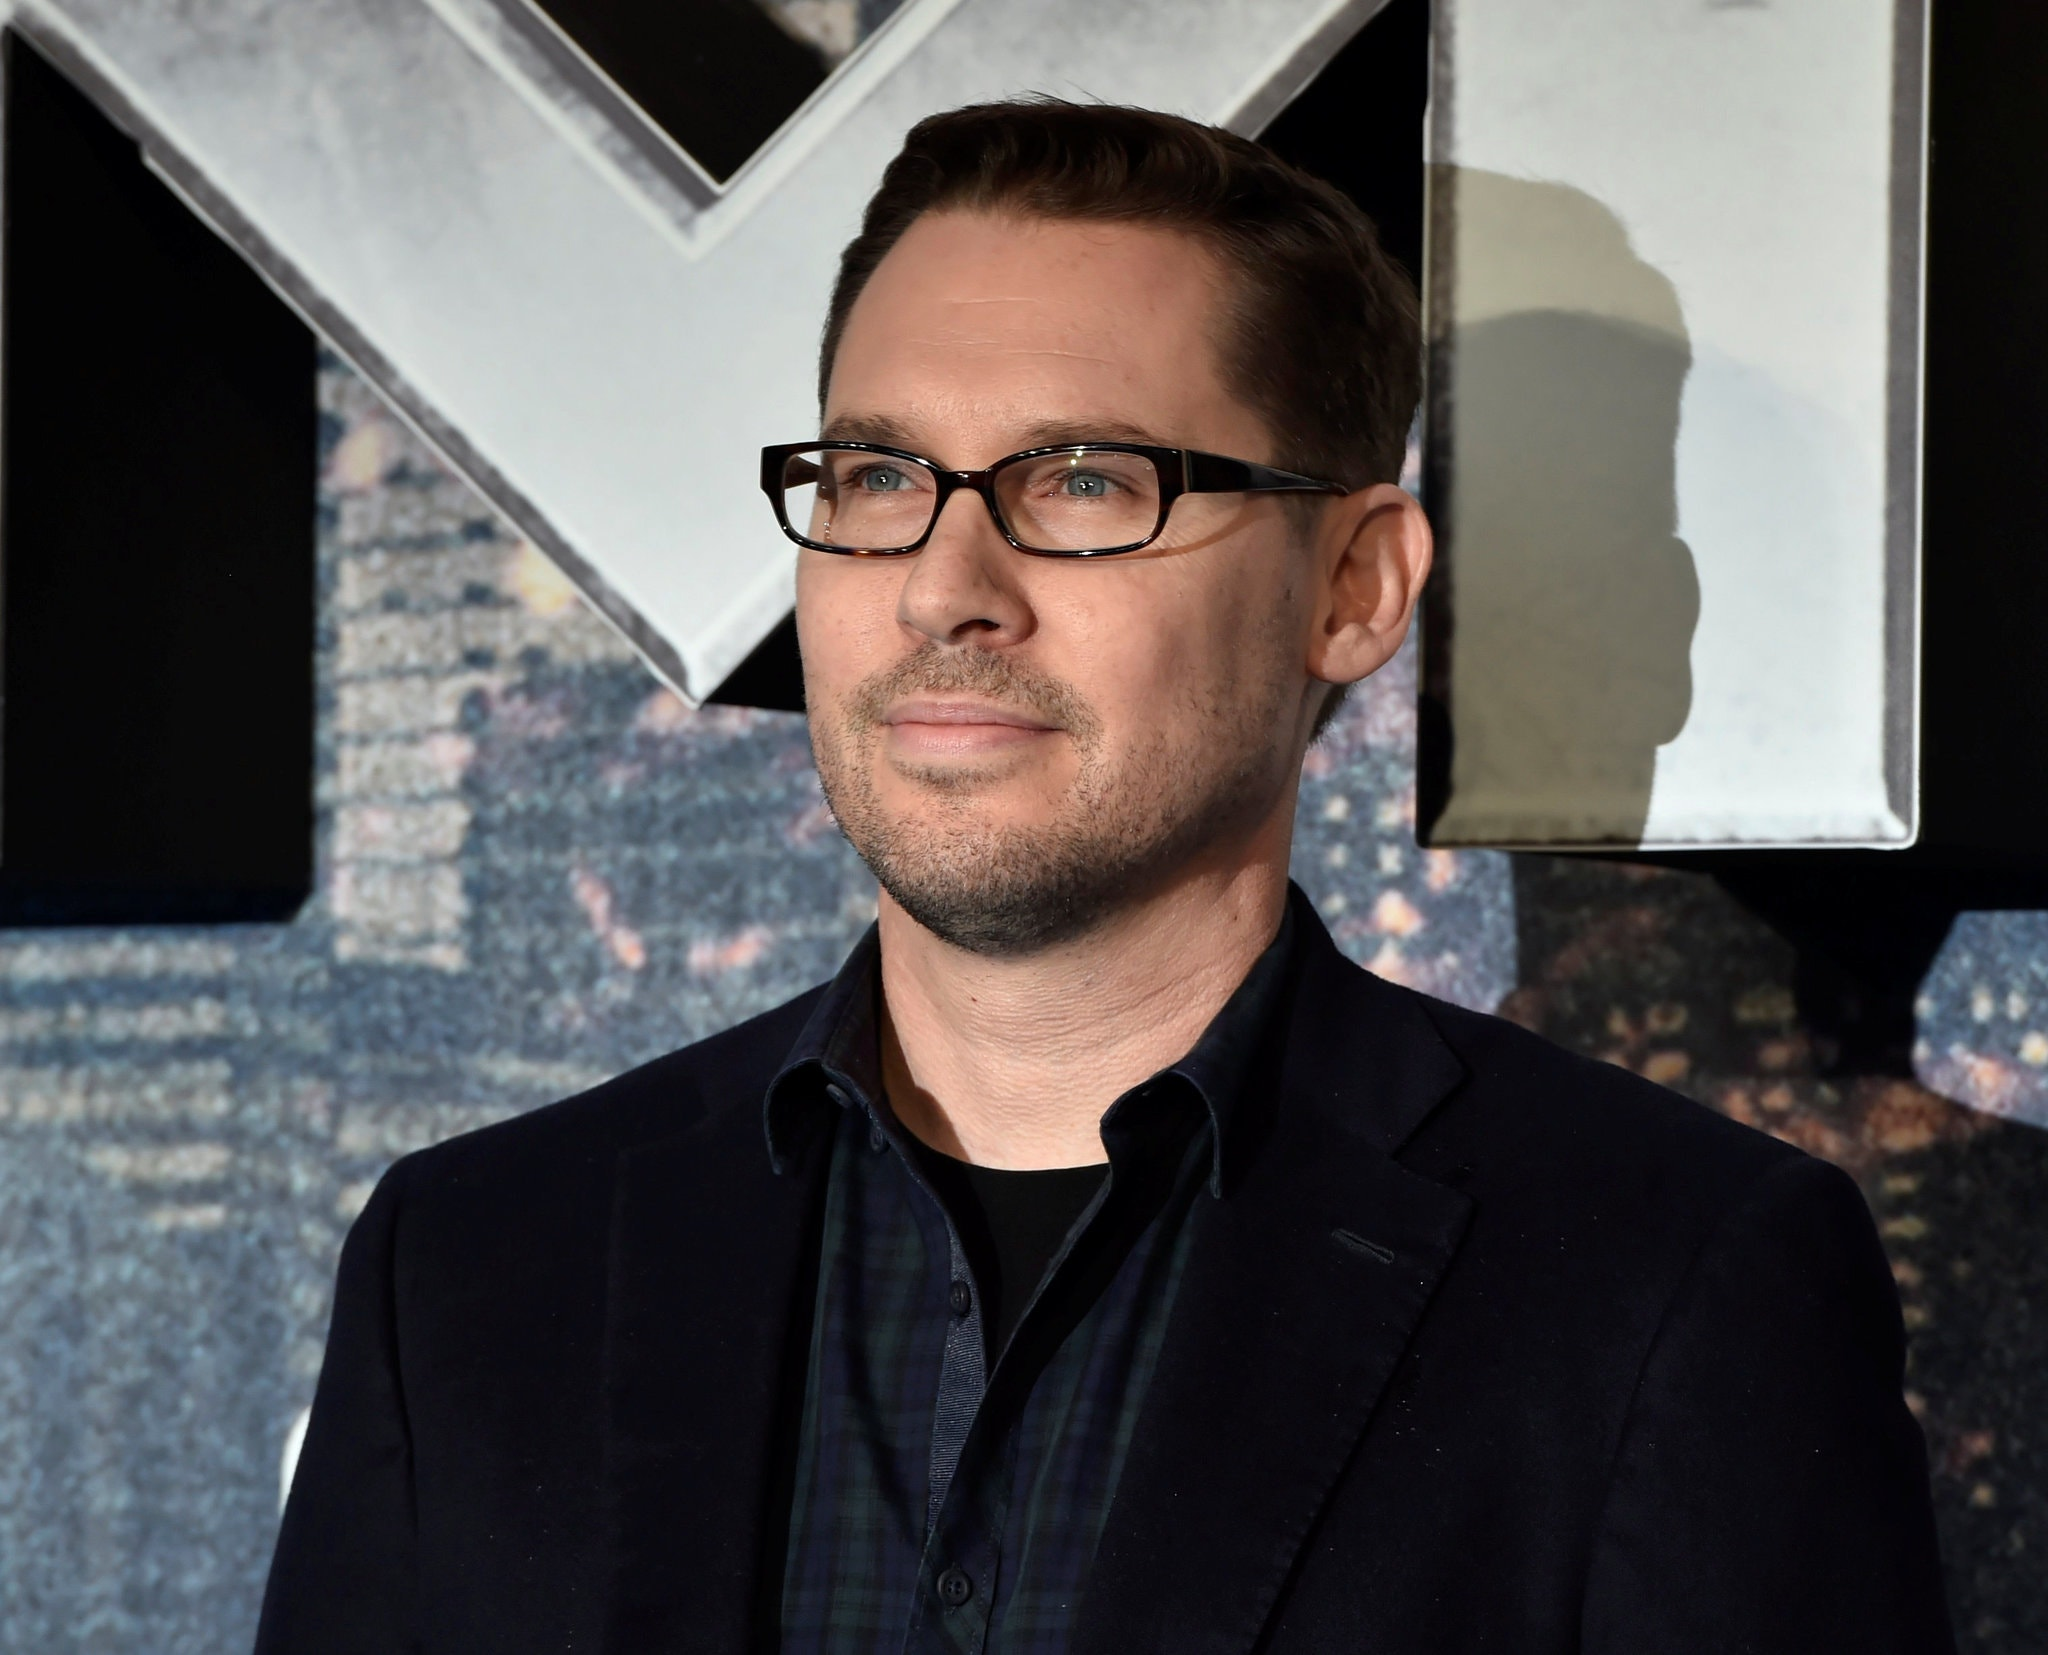 Bryan Singer to Settle Sexual Assault Lawsuit for $150,000